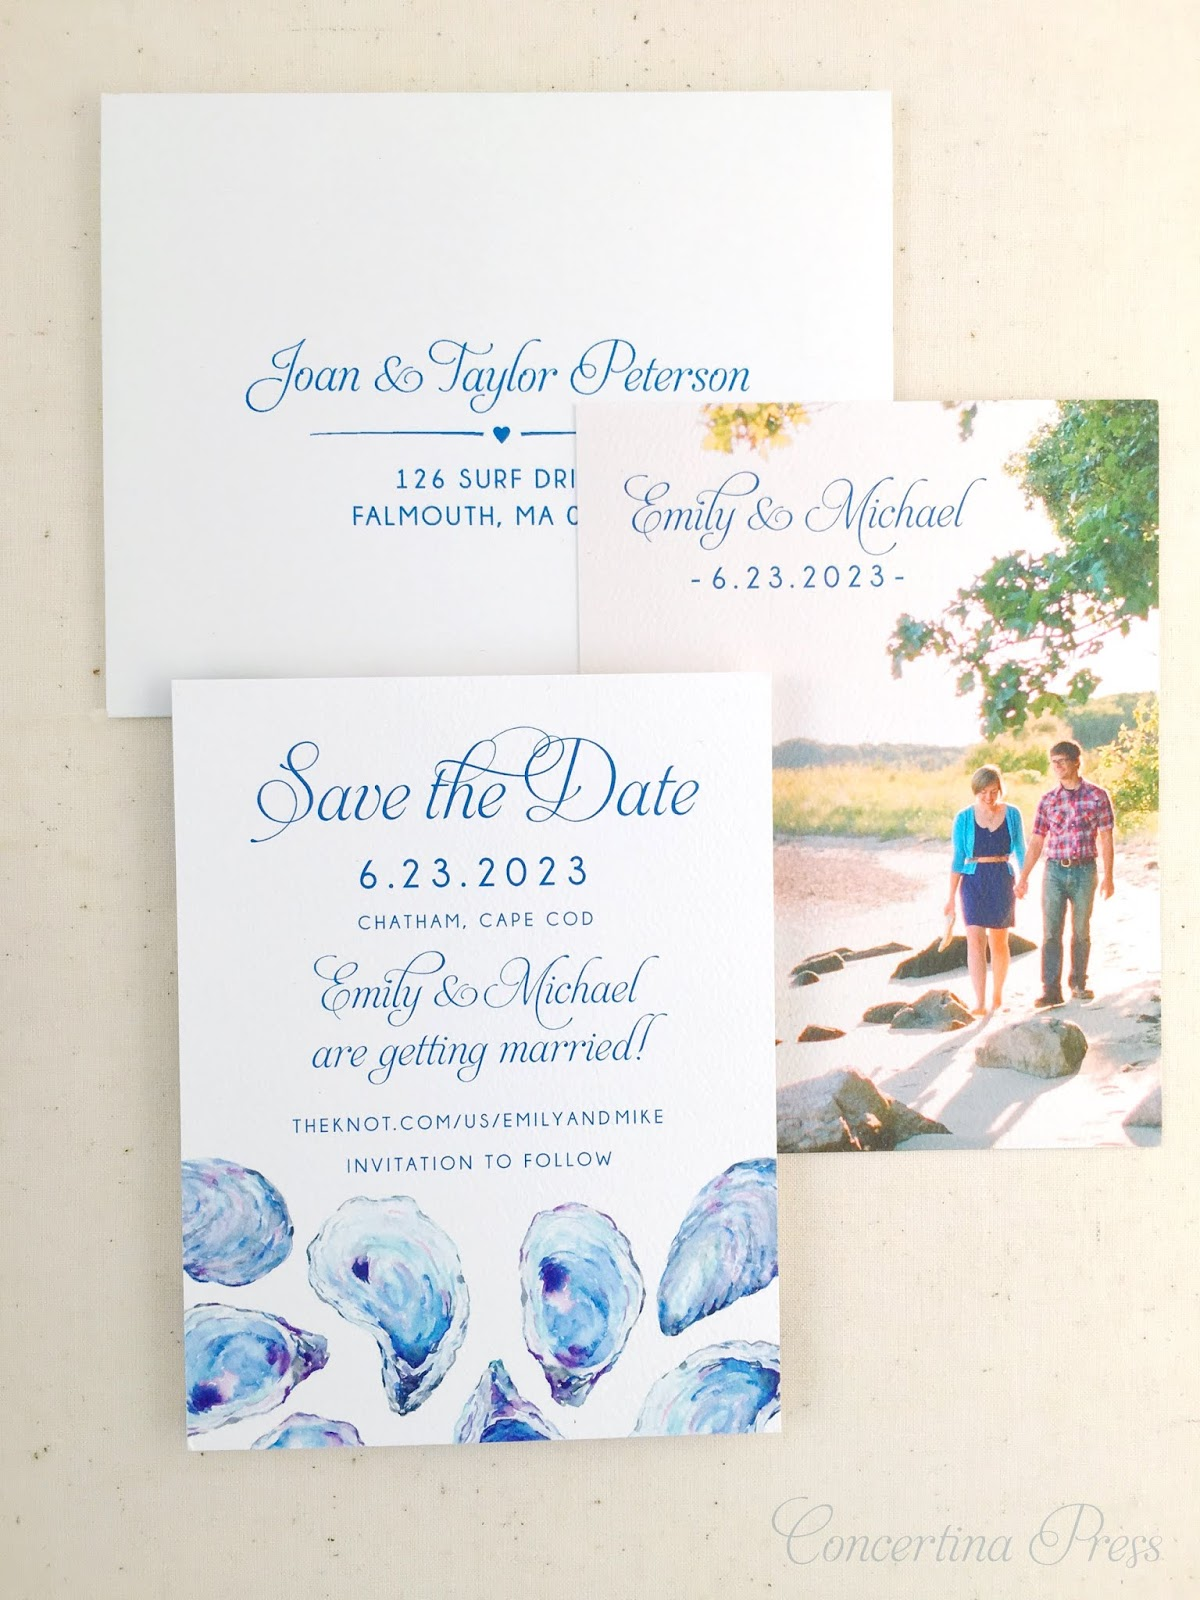 Oyster Watercolor Save the Dates with photo and address from Concertina Press